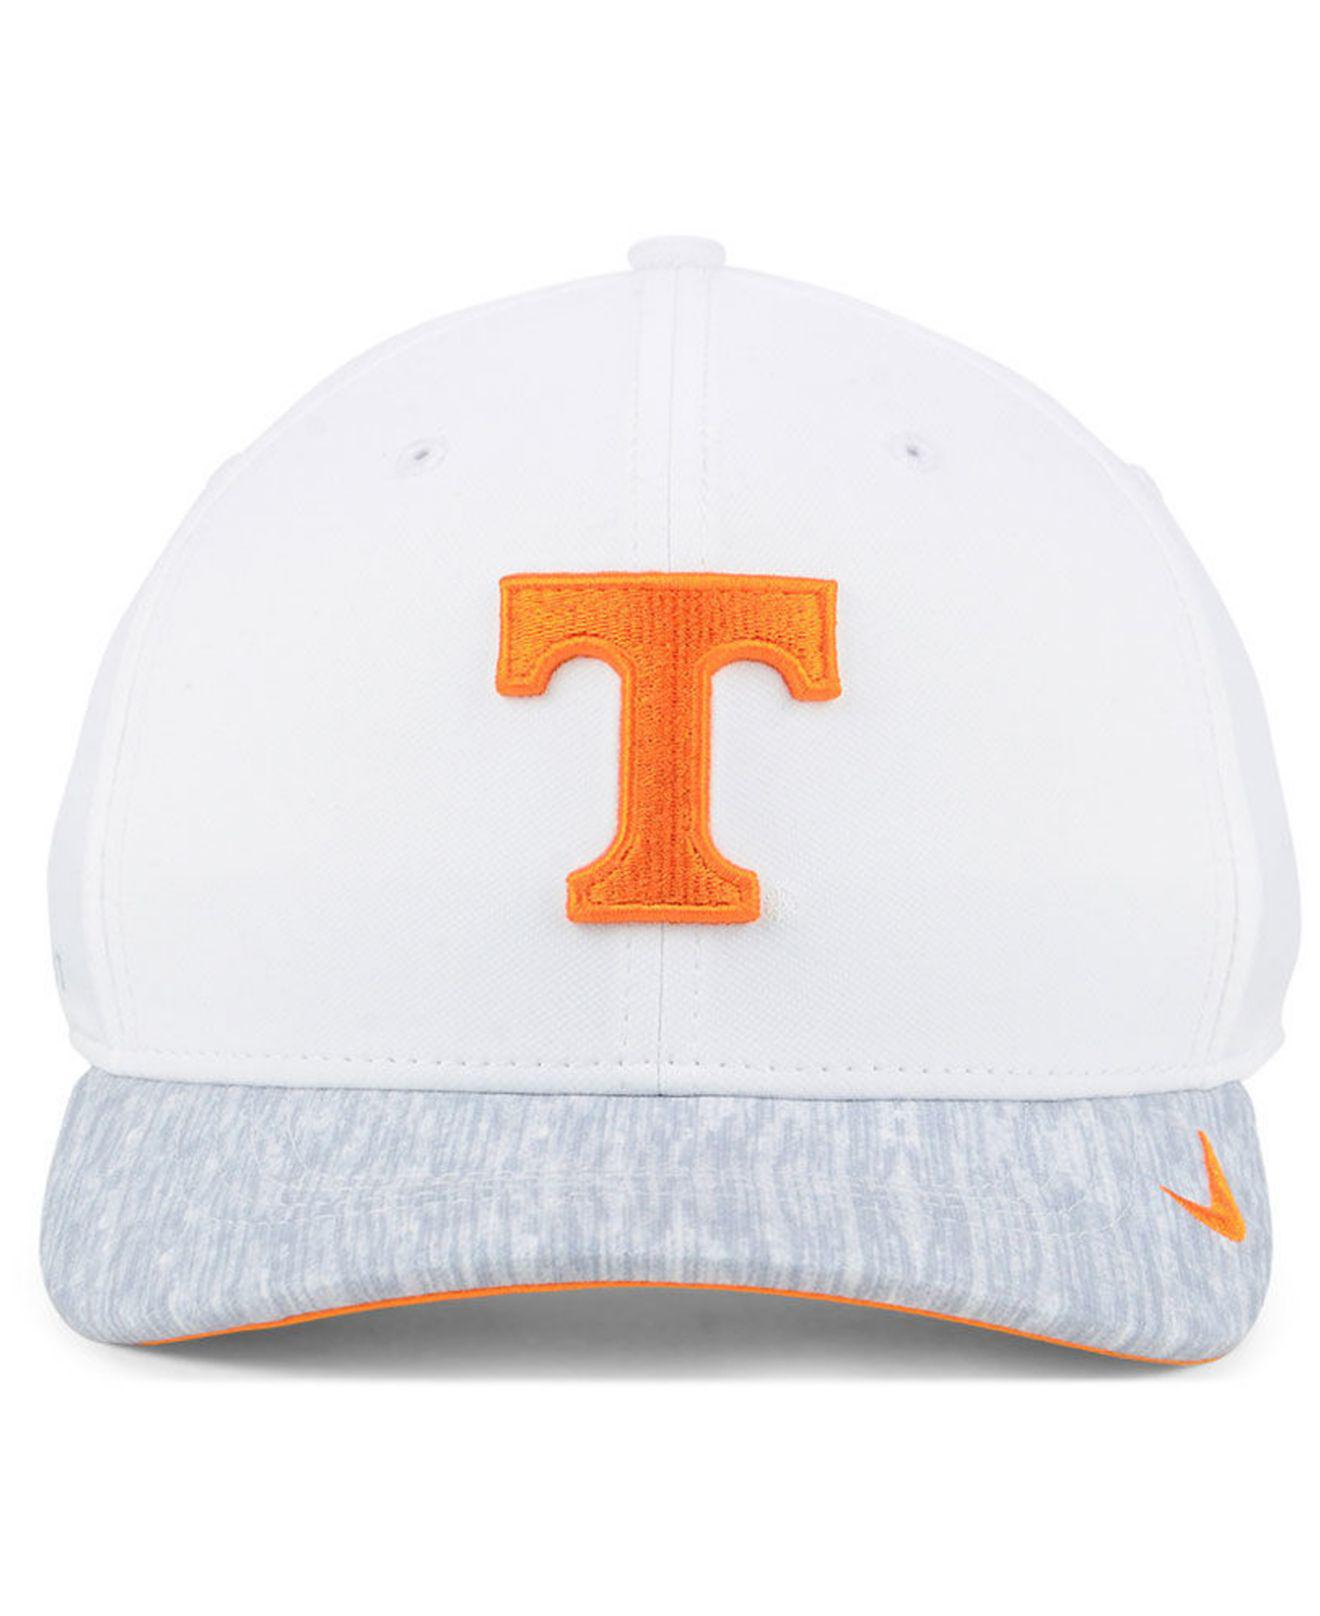 80123bda42307 low price lyst nike tennessee volunteers arobill swoosh flex cap in white  for men 1d555 7456c